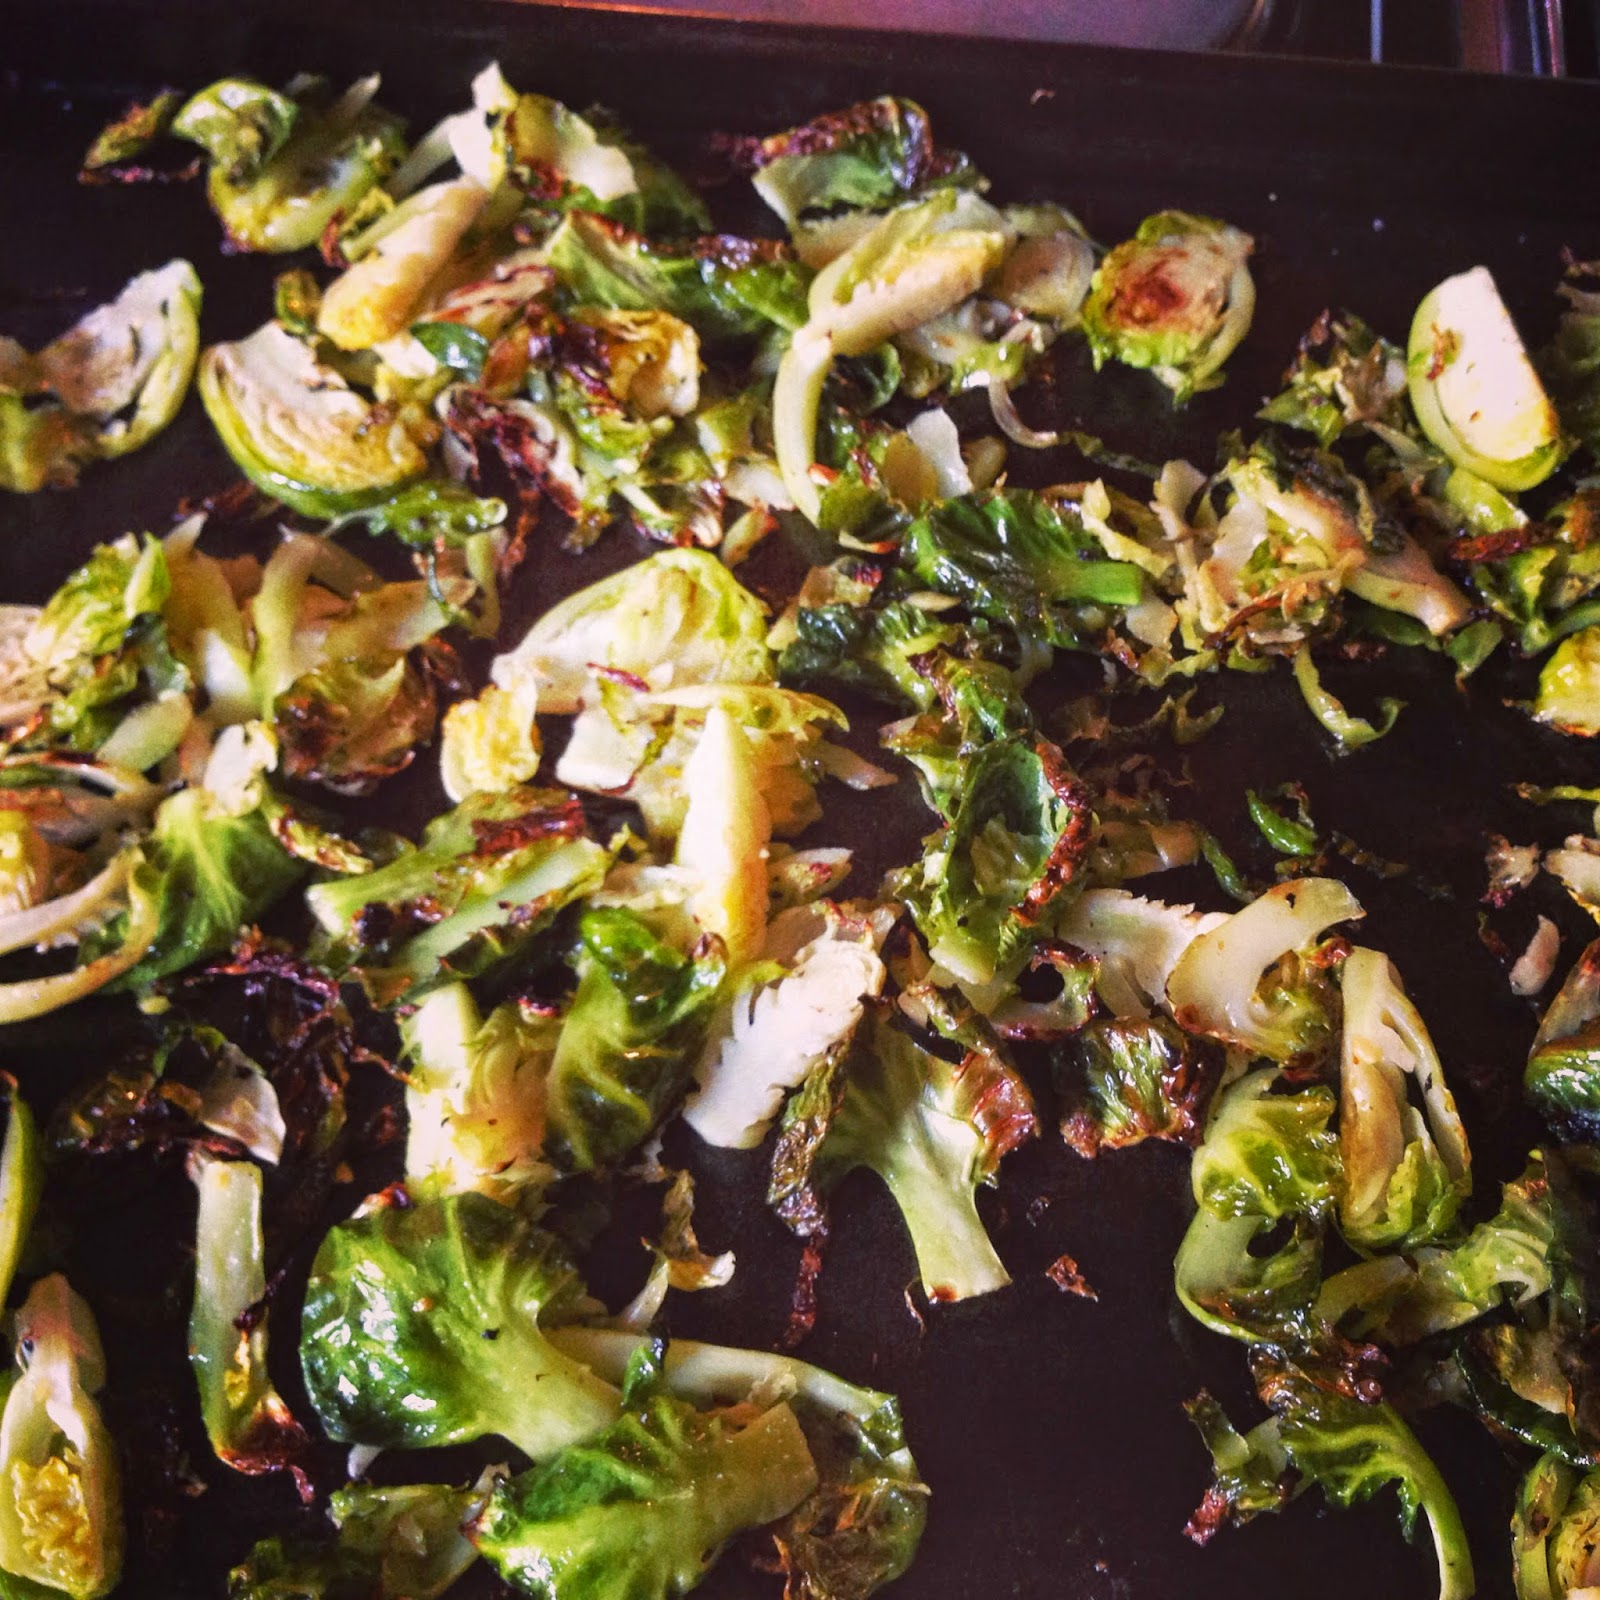 Brussels sprouts are hydrophilic foods. Try roasting them in the oven.